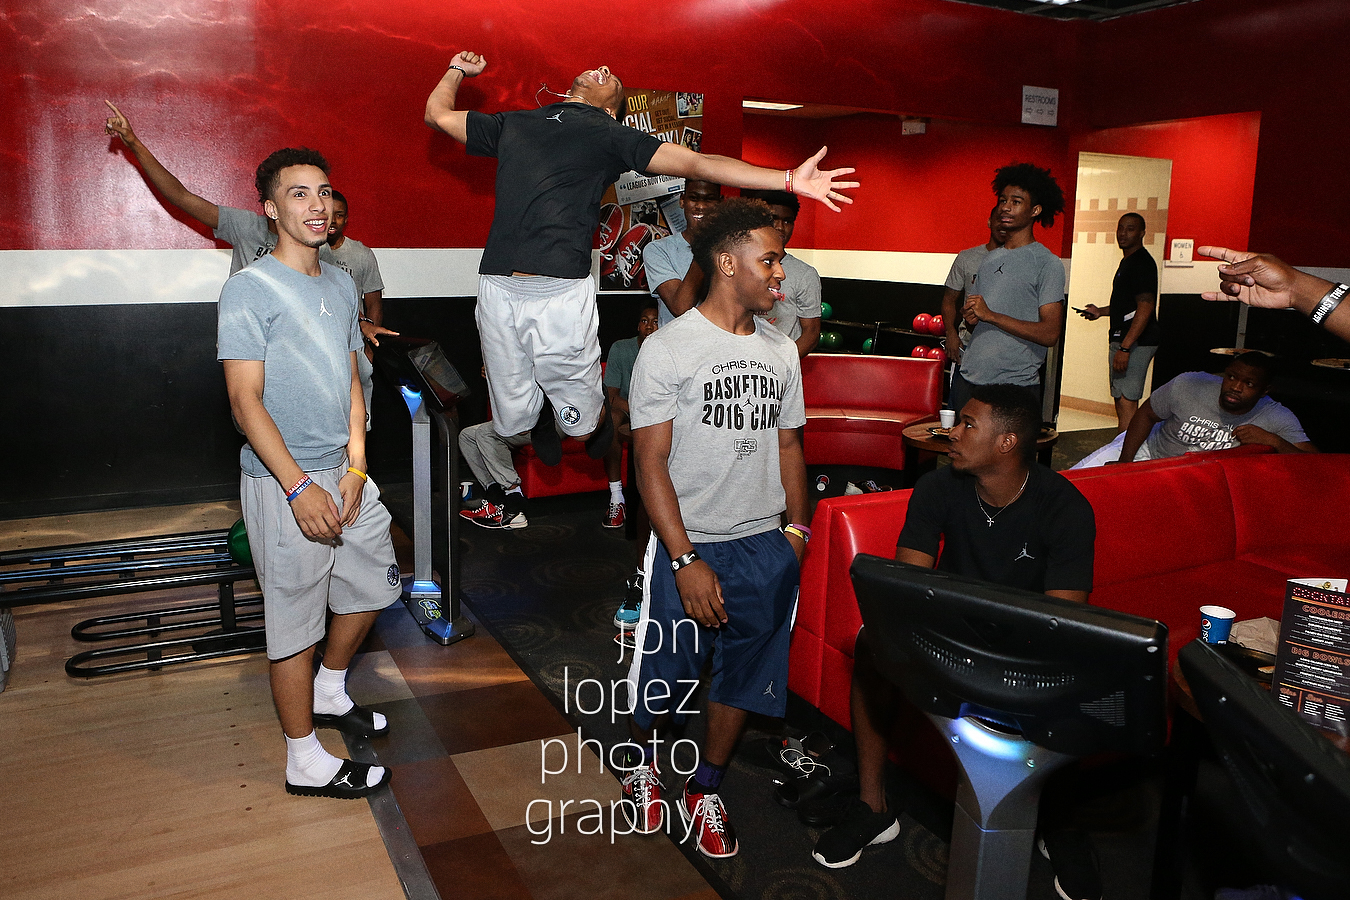 Tremont Waters leaps in jubilation having taken a sizeable lead at the bowling alley, but his opponent had one more round to go...